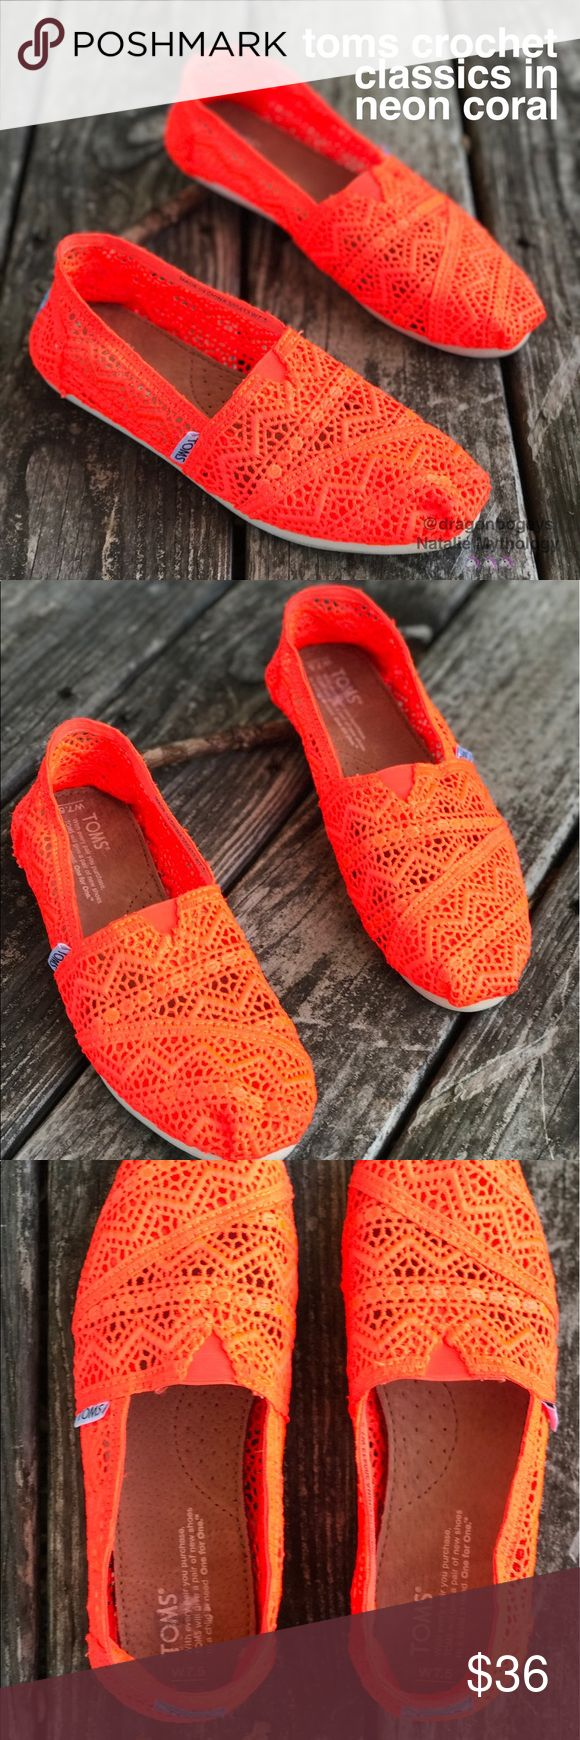 TOMS Crochet Classics in Neon Coral Neon is an understatement for these adorable crochet classics! These babies are BRIGHT. So bright that they almost glow in the dark! Fun zigzag crochet pattern. Perfect for summer nights ☀️ Worn twice, in excellent condition! TOMS Shoes Flats & Loafers